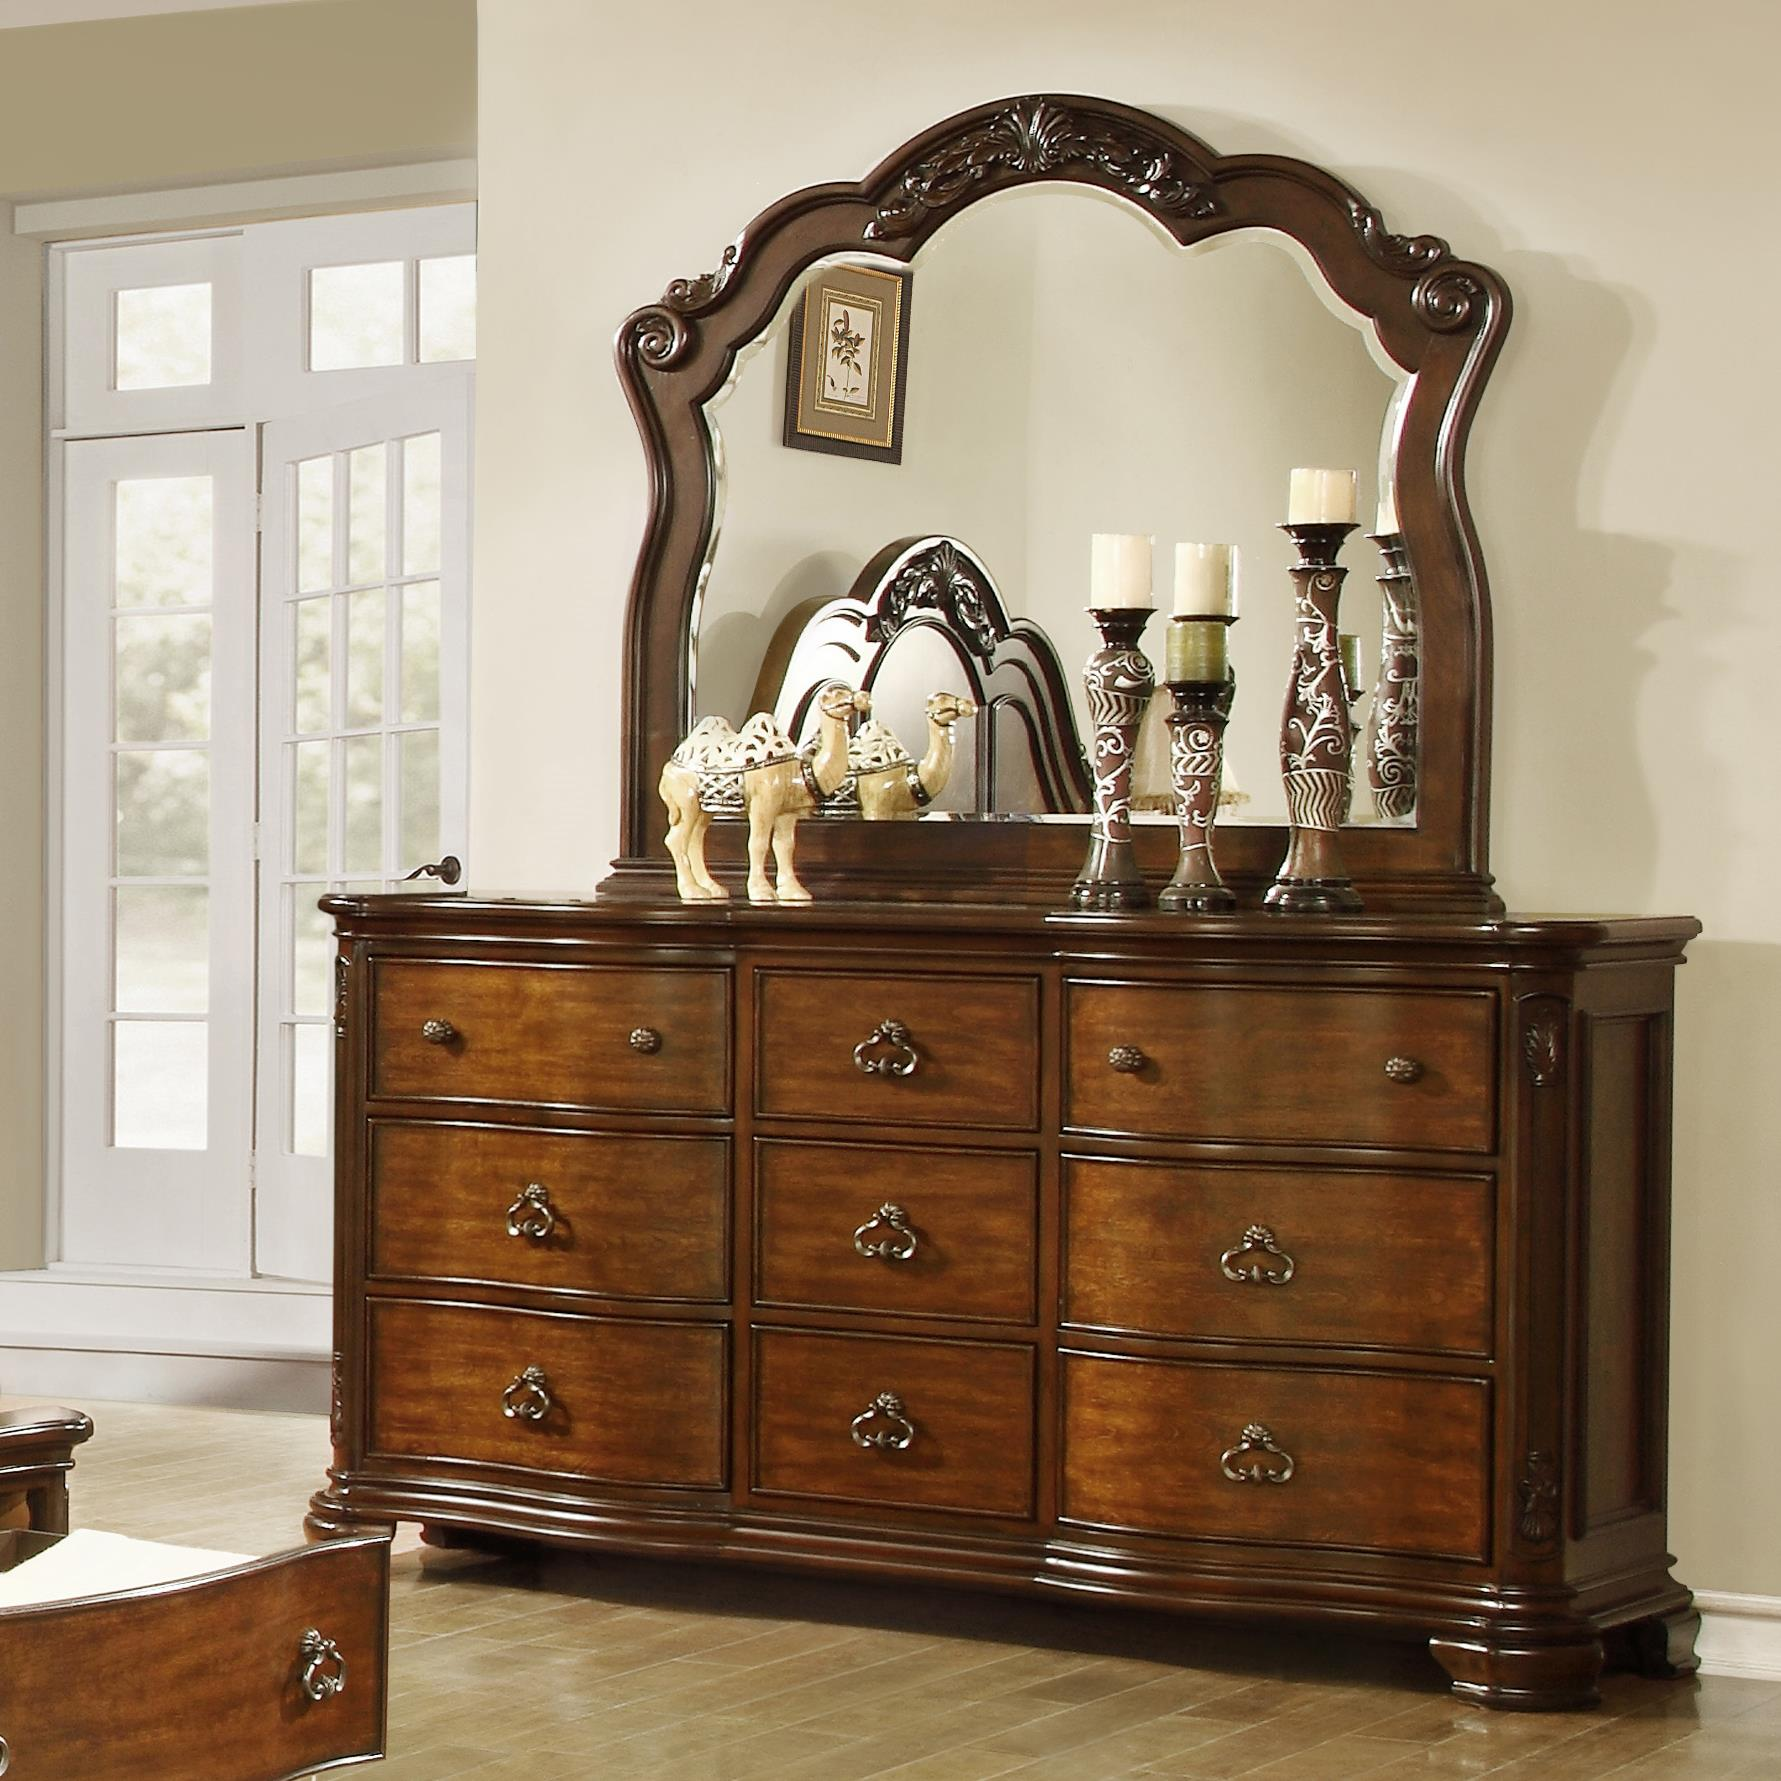 Dresser with 9 Drawers and Mirror Set